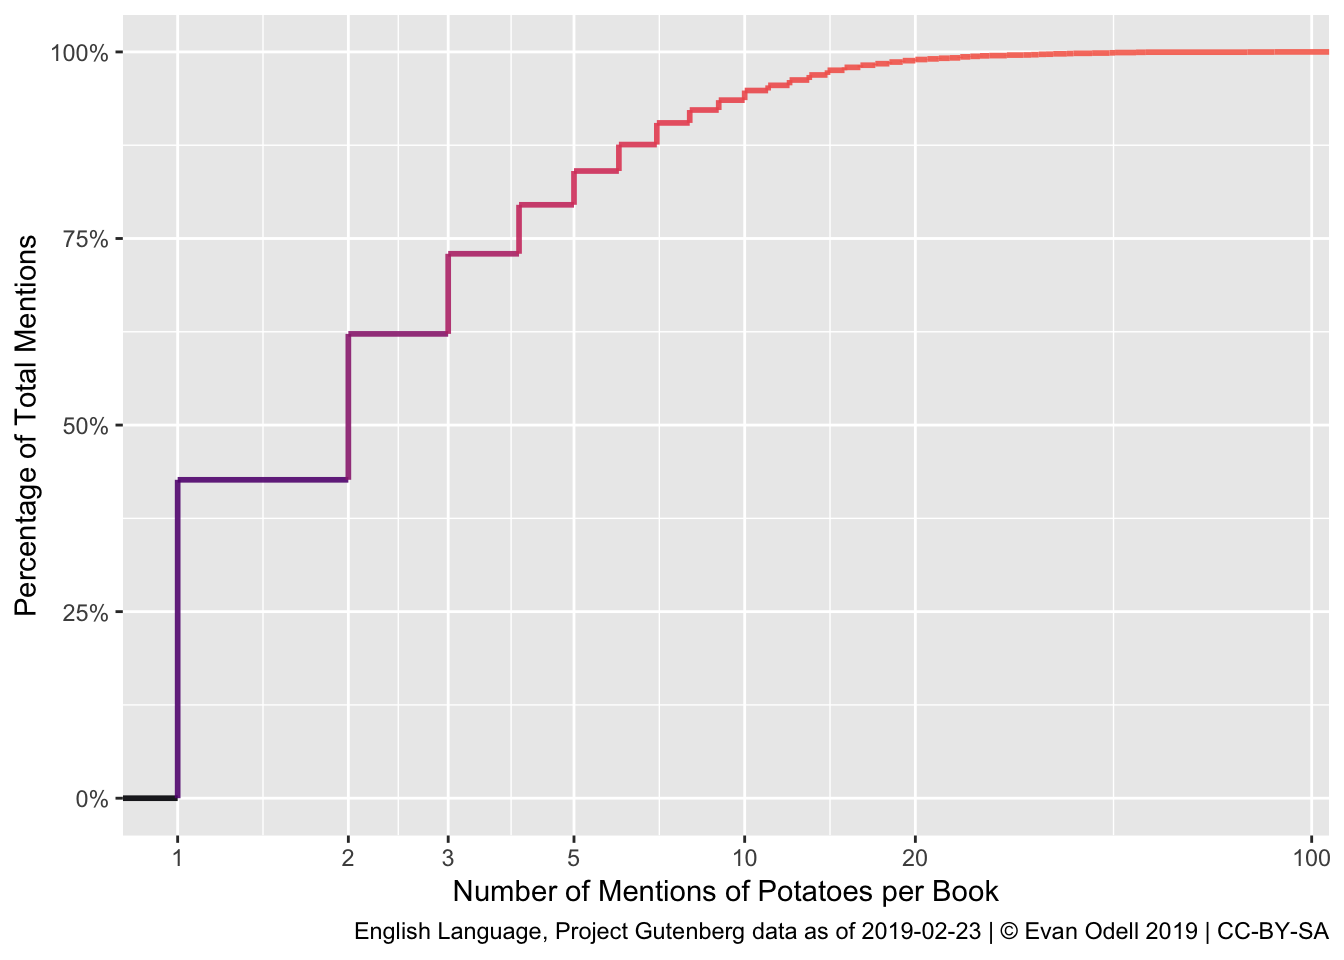 Empirical Cumulative Distribution Function of Potatoes in Fiction